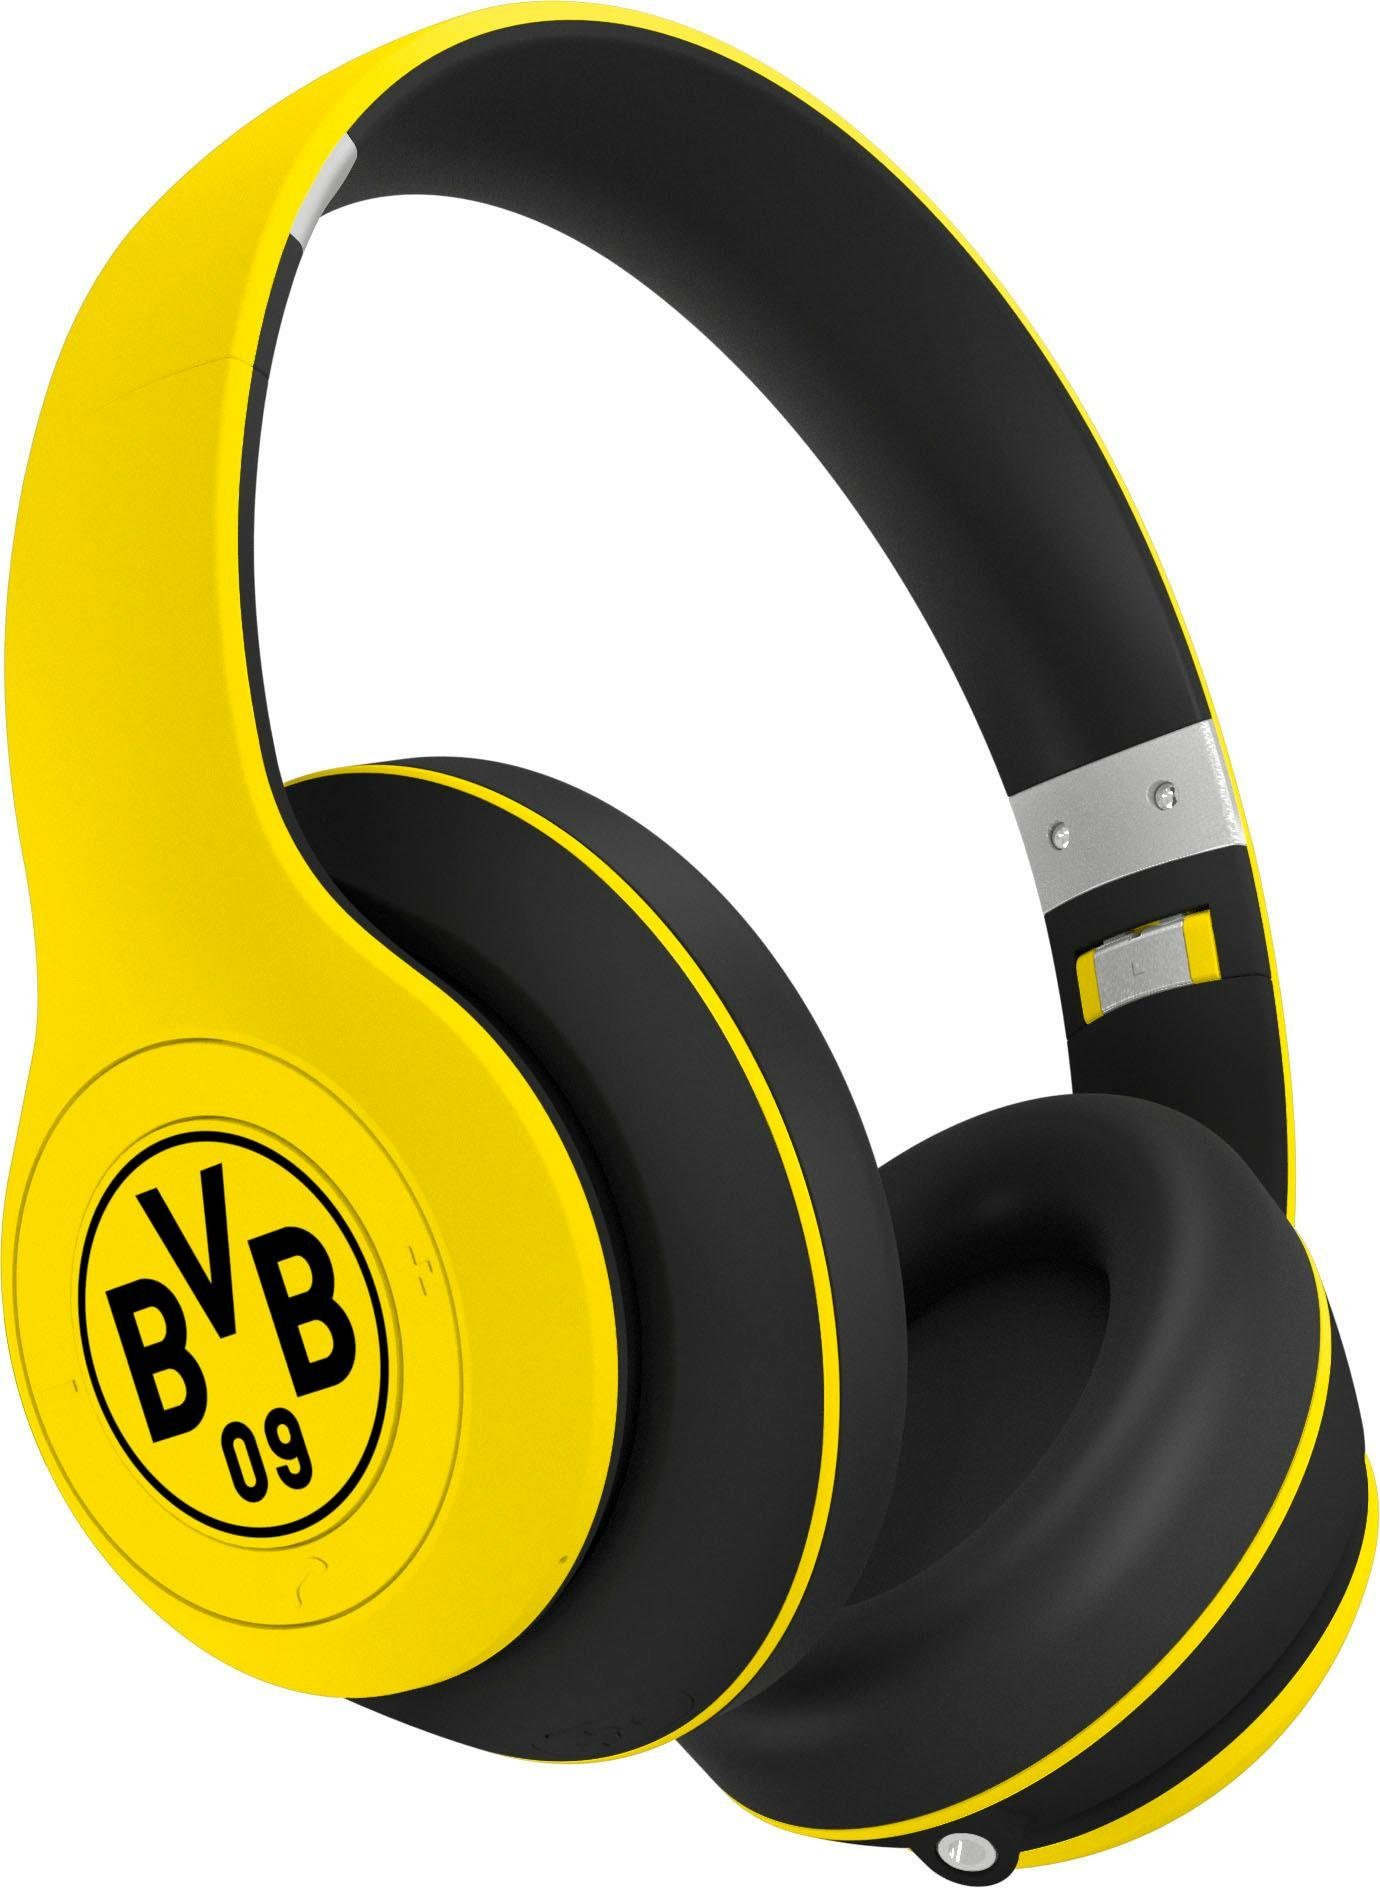 ready2music »RIVAL BVB Edition« Bluetooth Kopfhörer (Bluetooth, BVB Fan Edition) online kaufen | OTTO